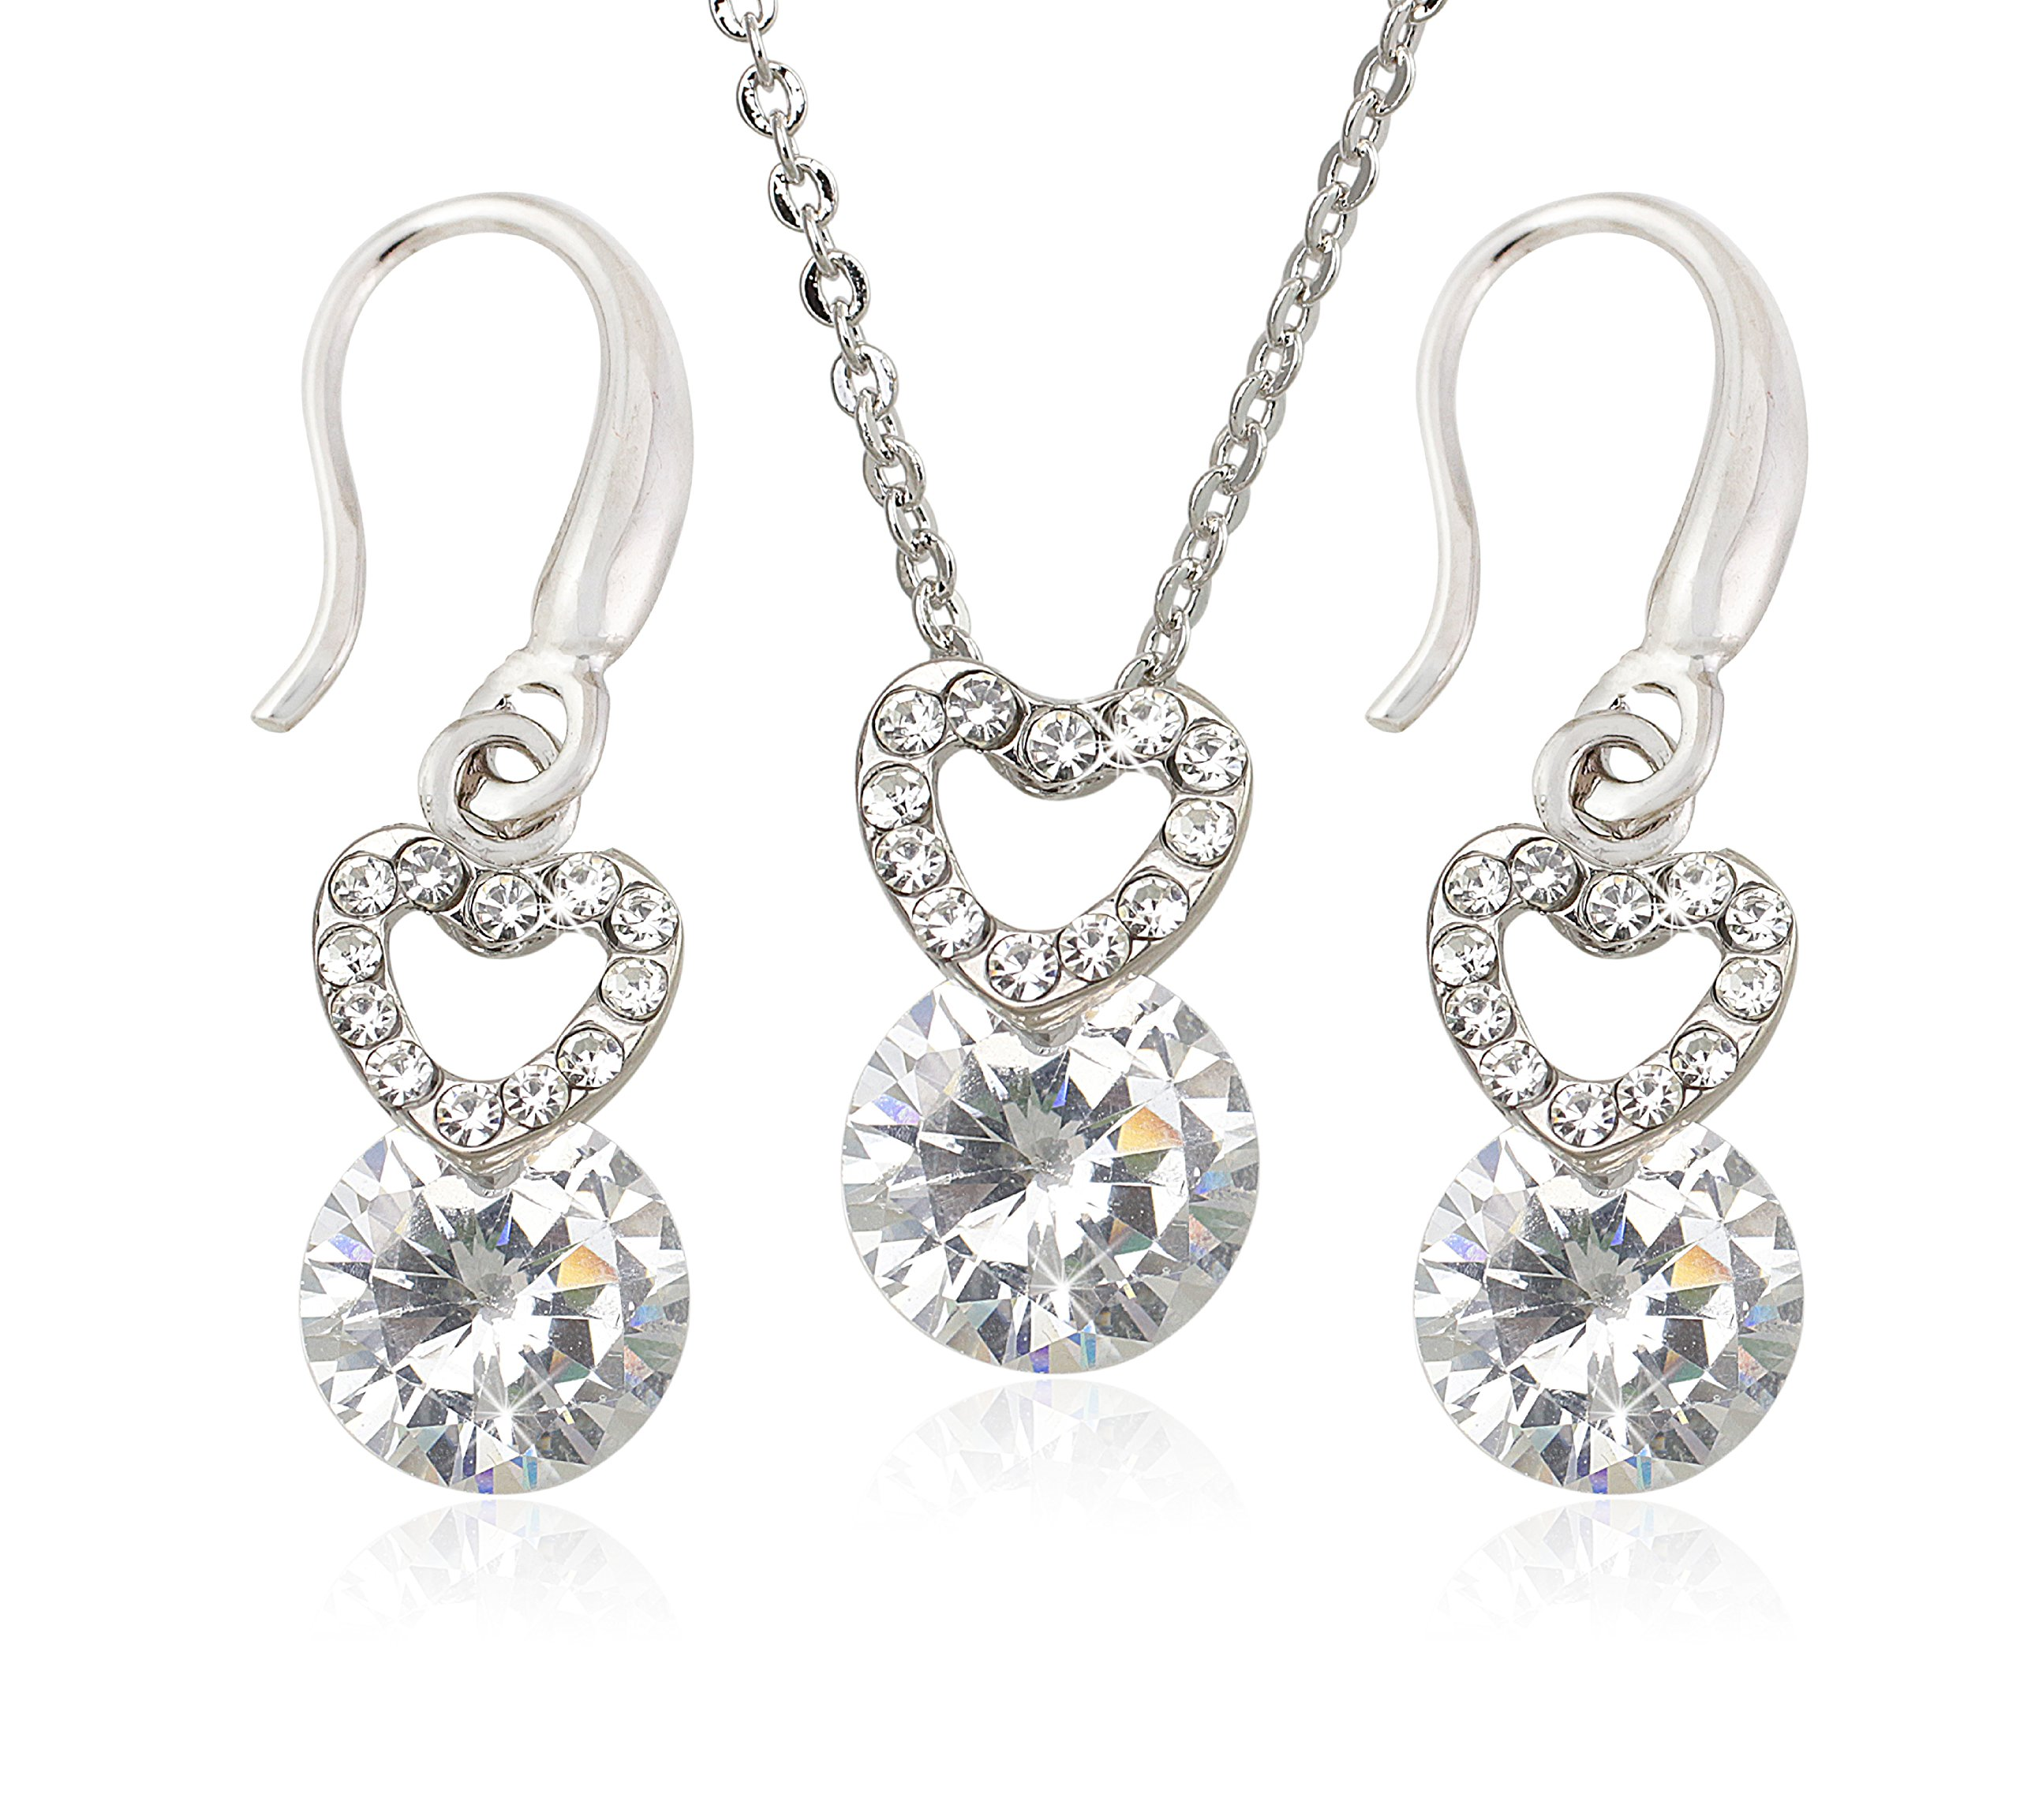 Crystal Heart Necklace with Cubic Zirconia Heart Dangle Earrings - For Girlfriend, Mom and Special Girls